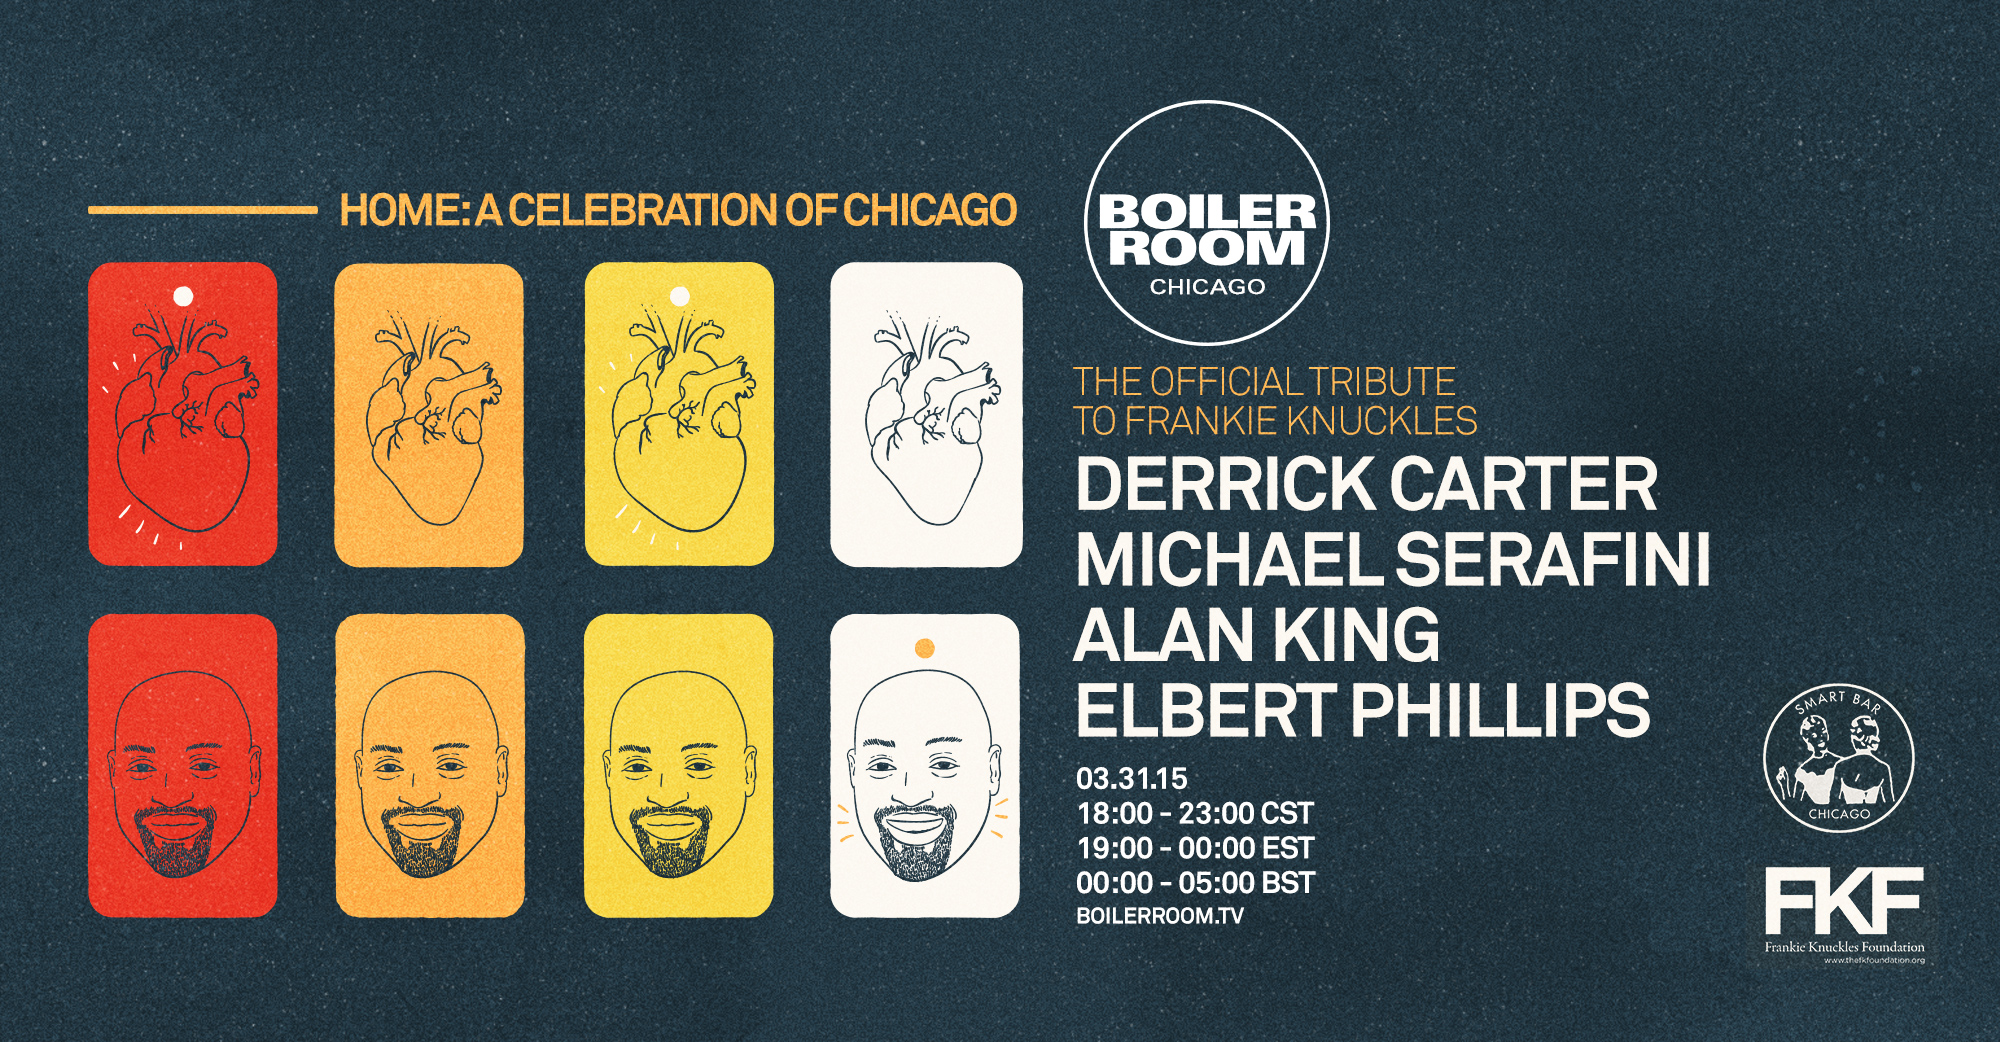 Home: A Celebration of Chicago, II – The Official Tribute to Frankie Knuckles Flyer Image